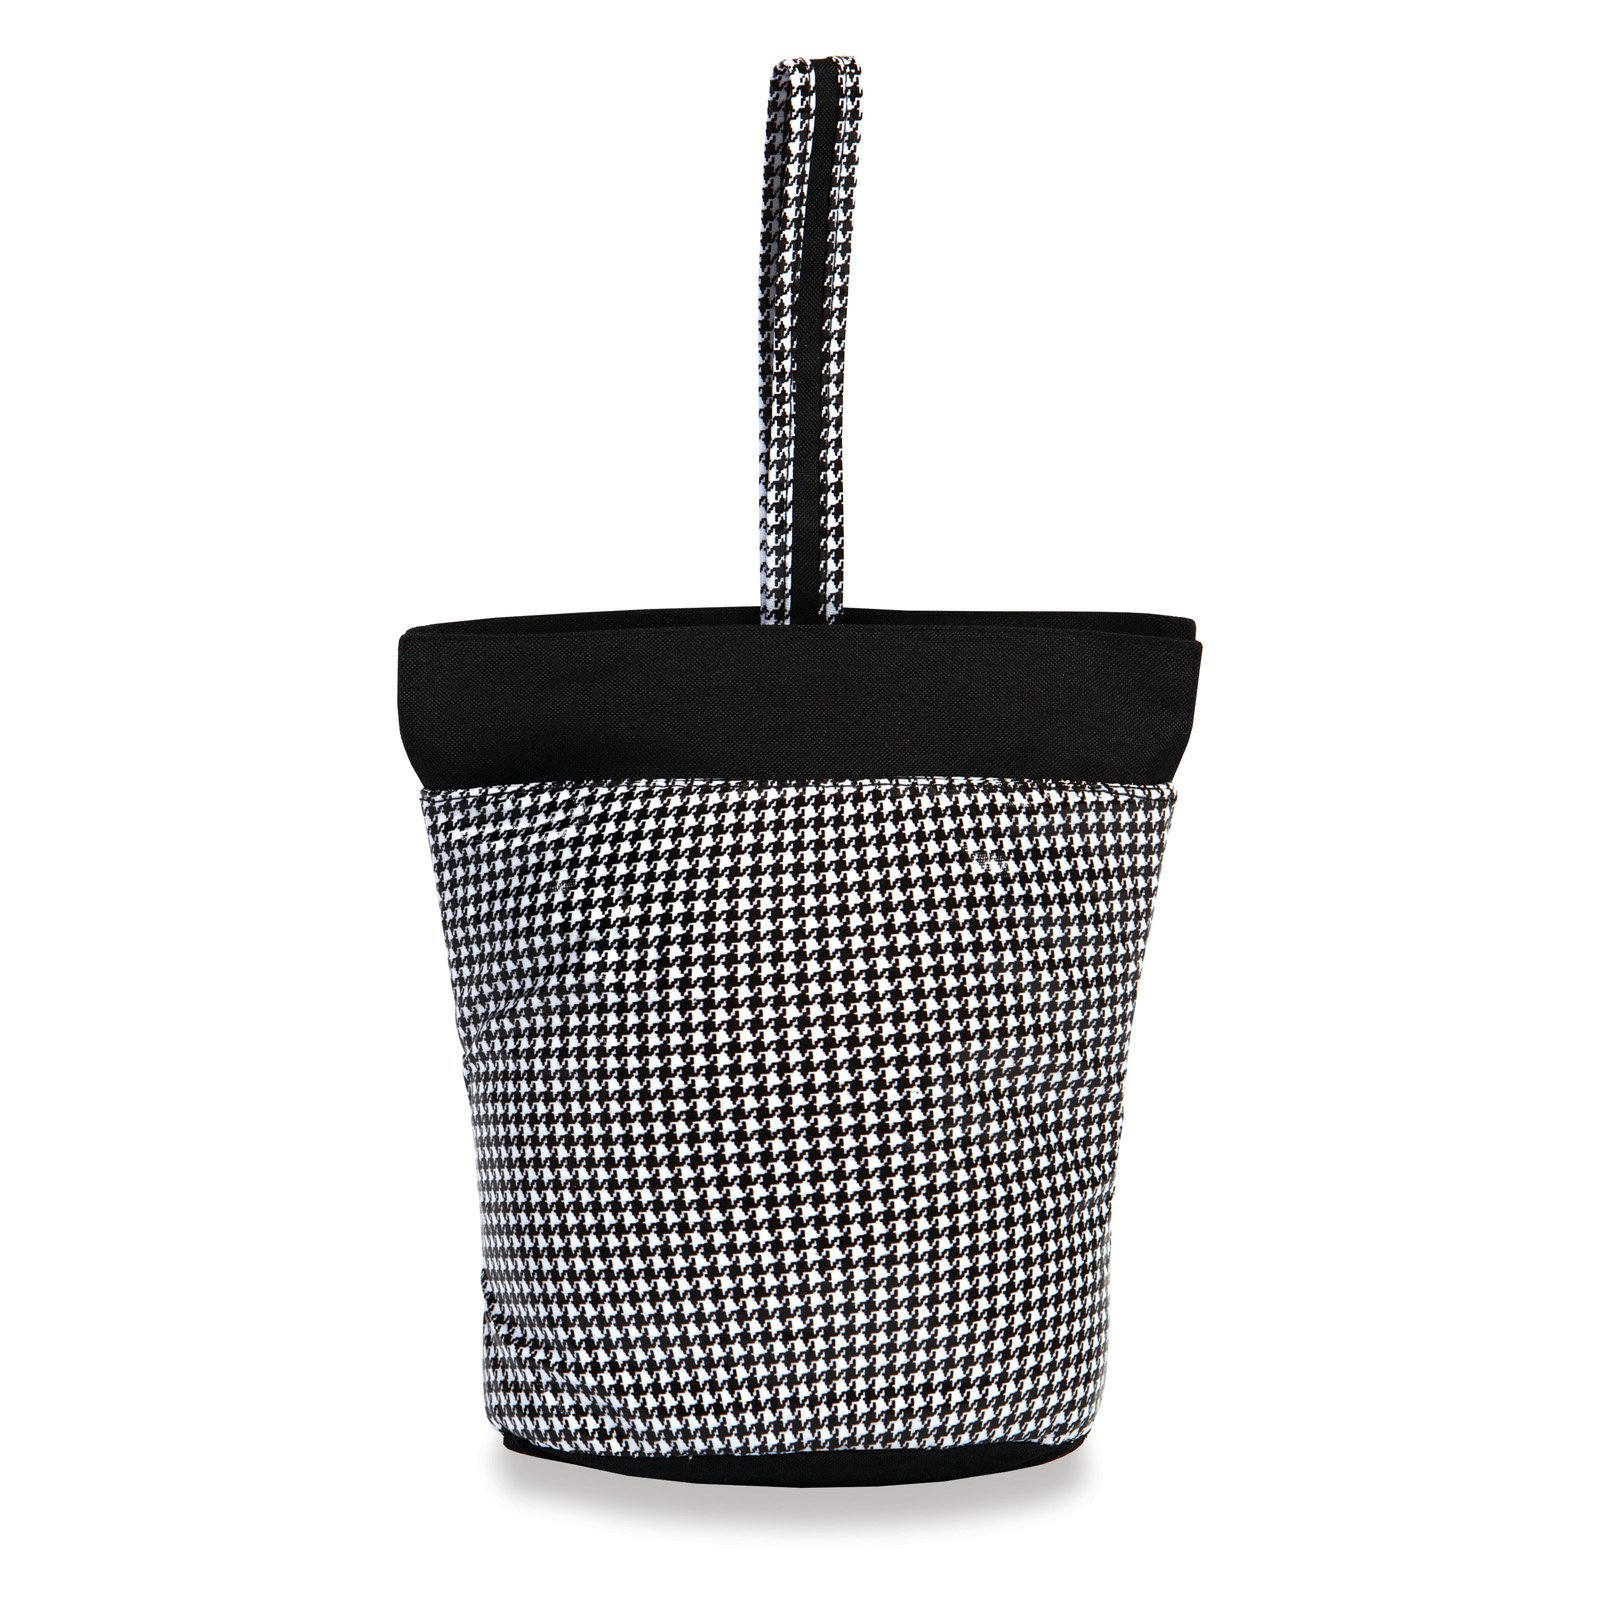 Picnic Plus Razz Lunch Tote - Houndstooth